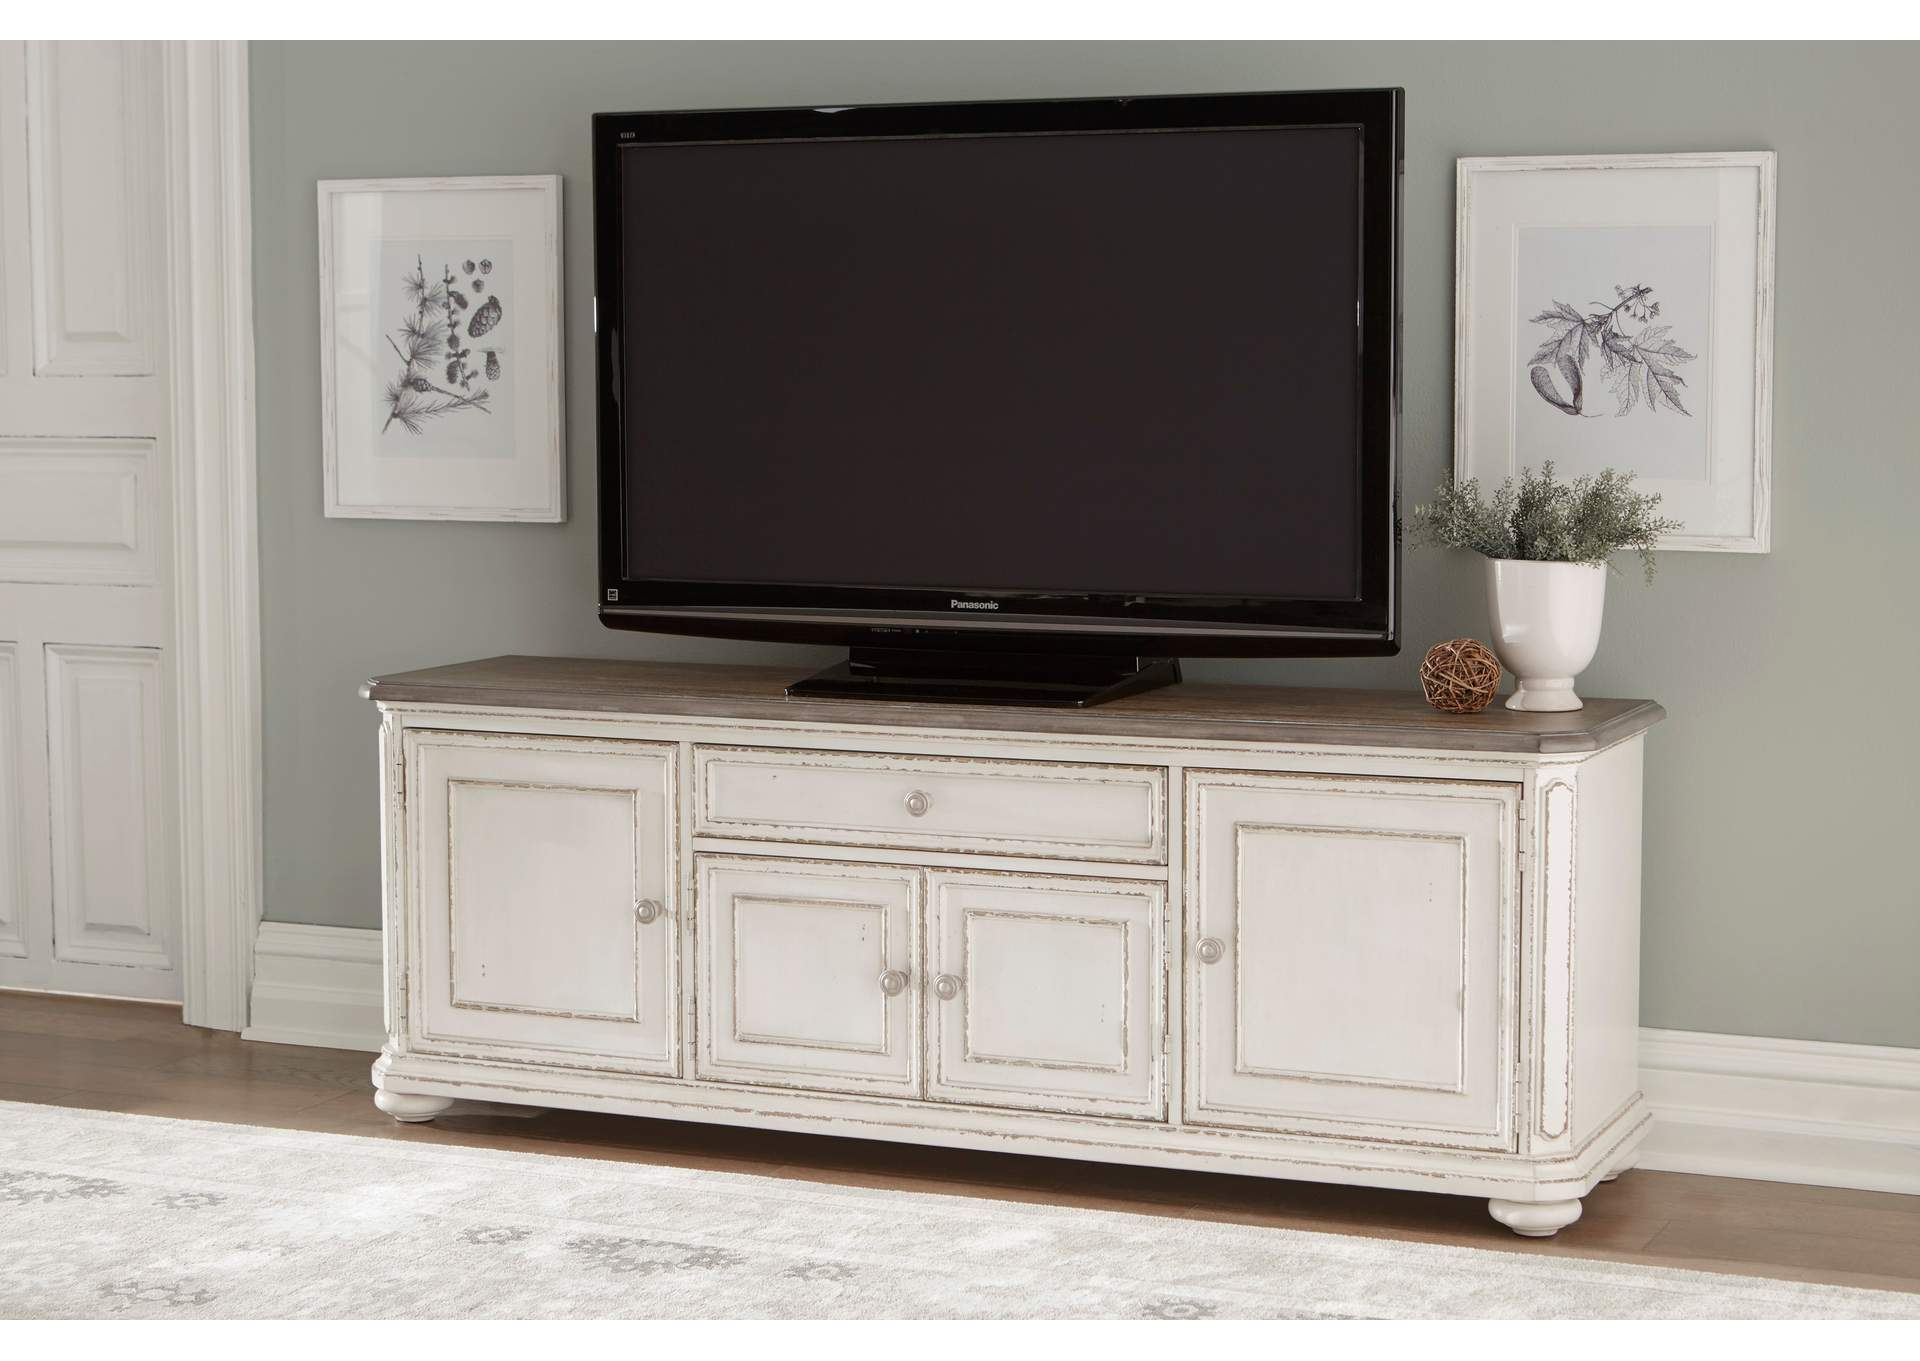 Willowick Antique White & Cherry TV Stand,Homelegance